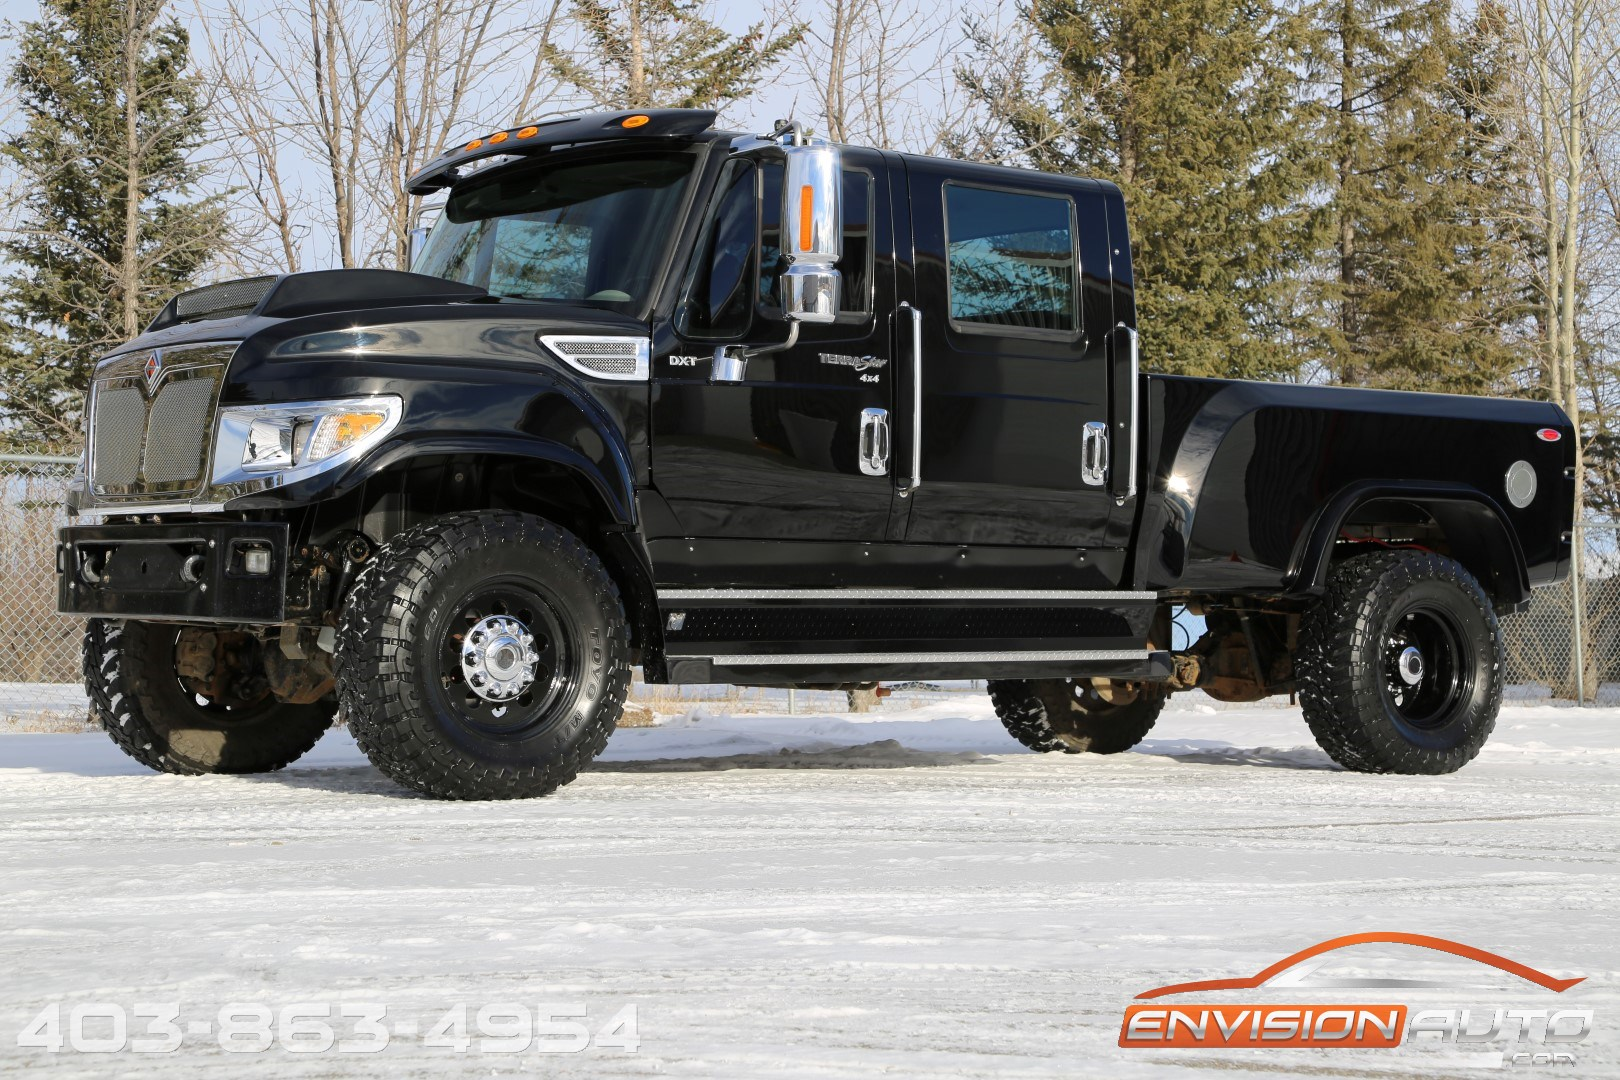 2014 International Harvester Terrastar Dxt Mxt 4x4 Show